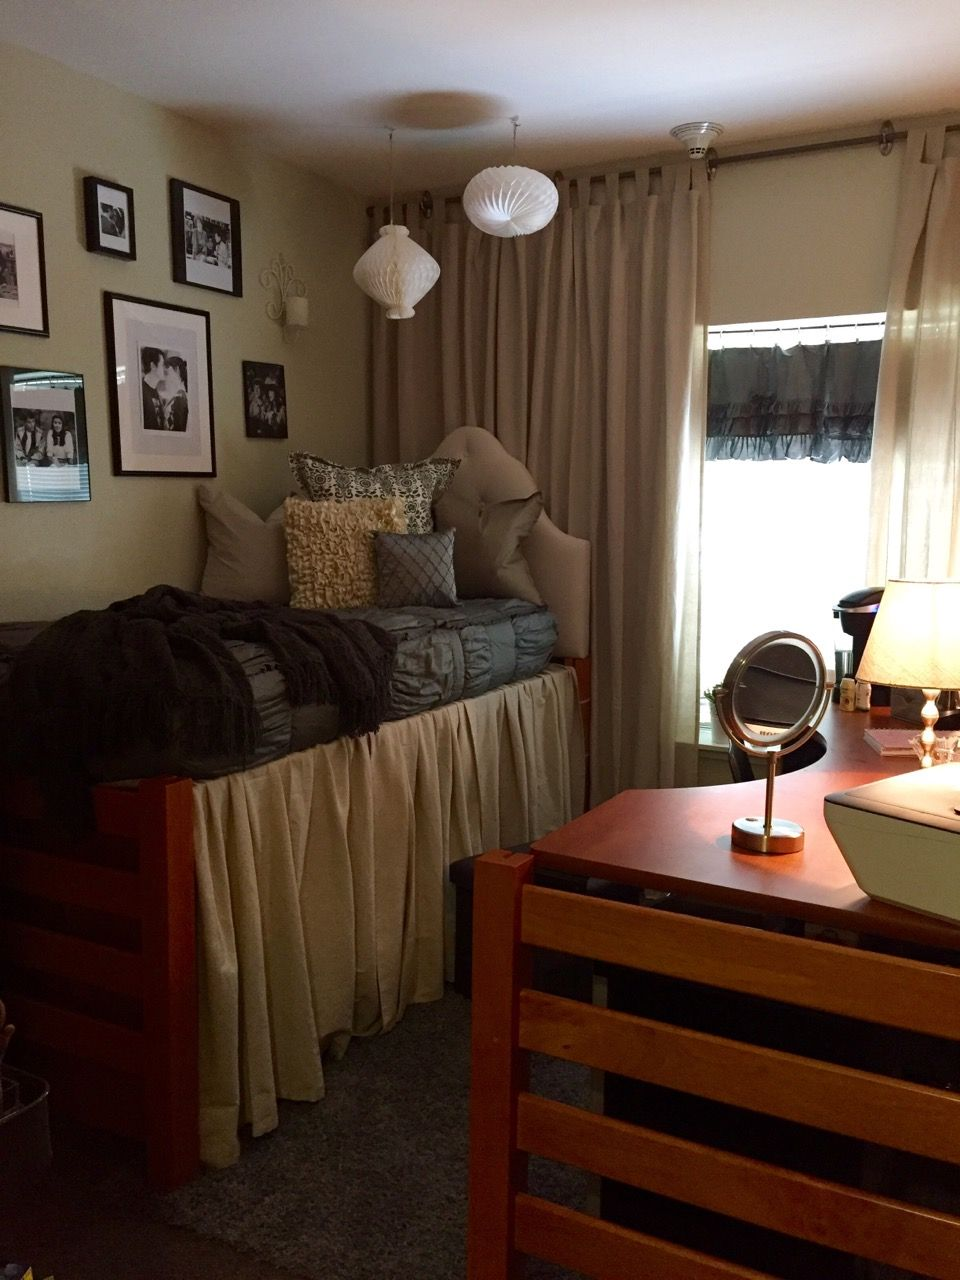 Dorm Room Styles: Cozy Dorm Bedroom At The University Of Arkansas- Hannah